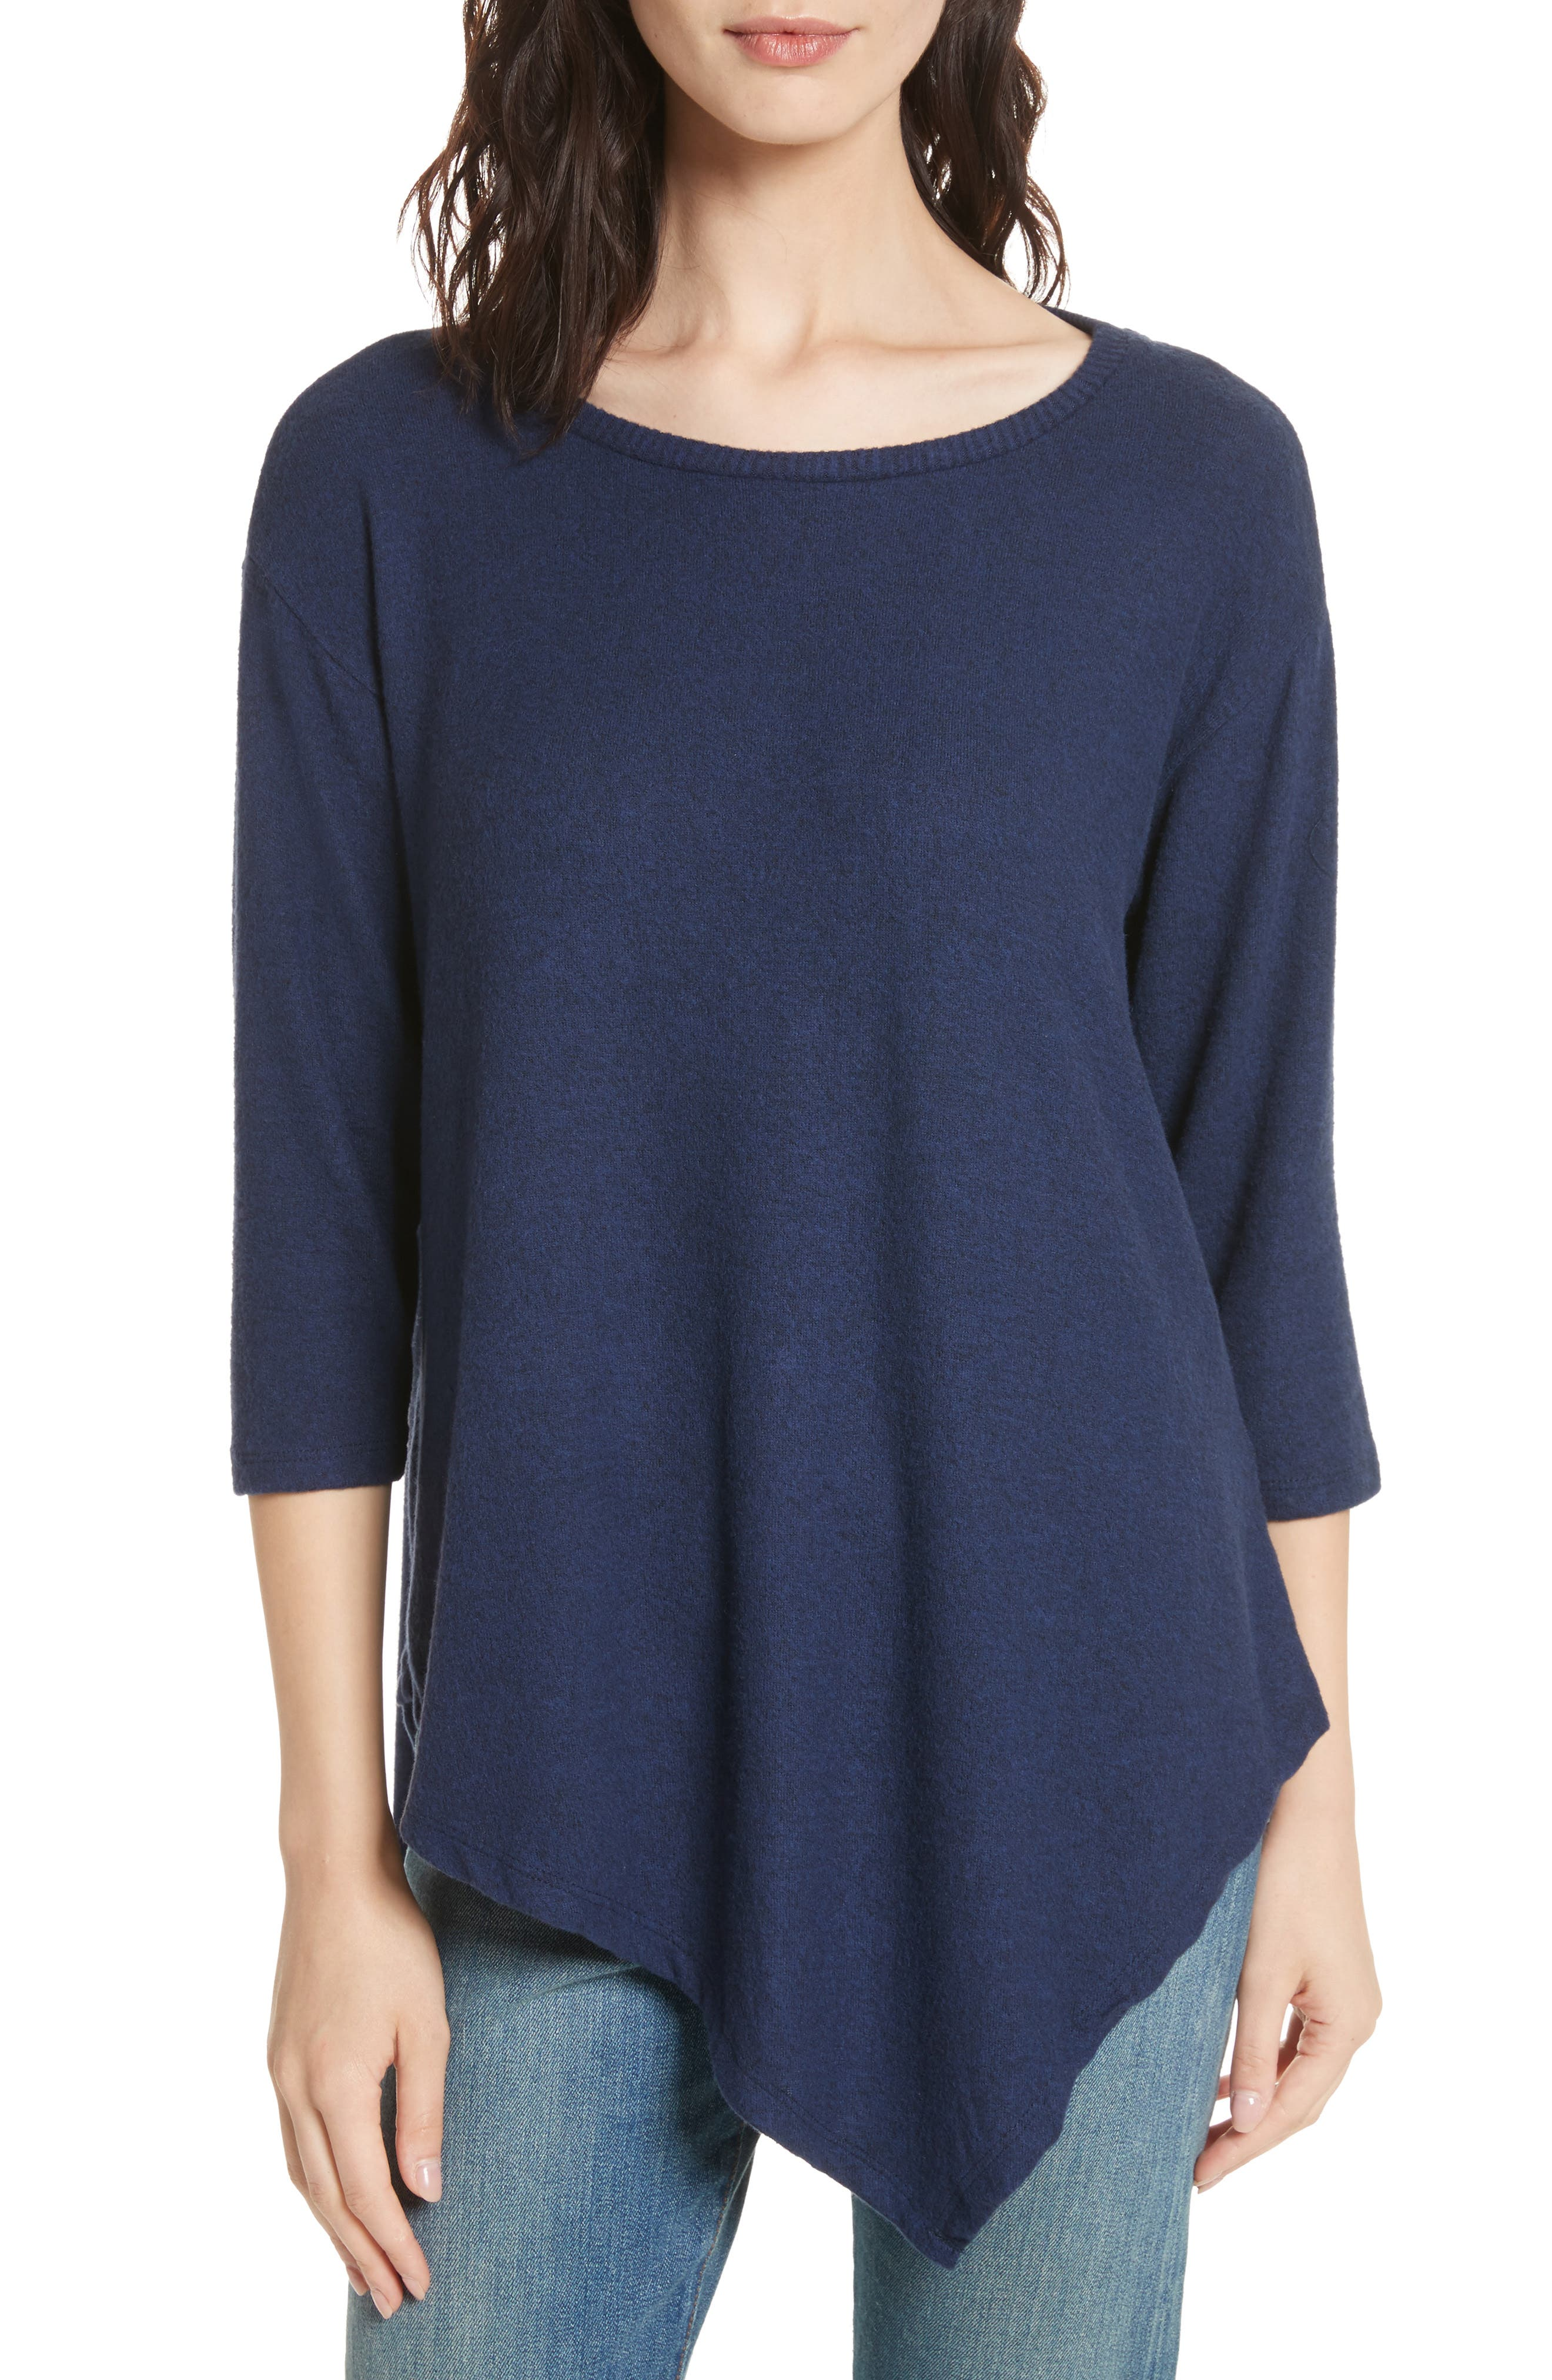 Soft Joie Tammy Asymmetrical Sweater,                             Main thumbnail 1, color,                             404